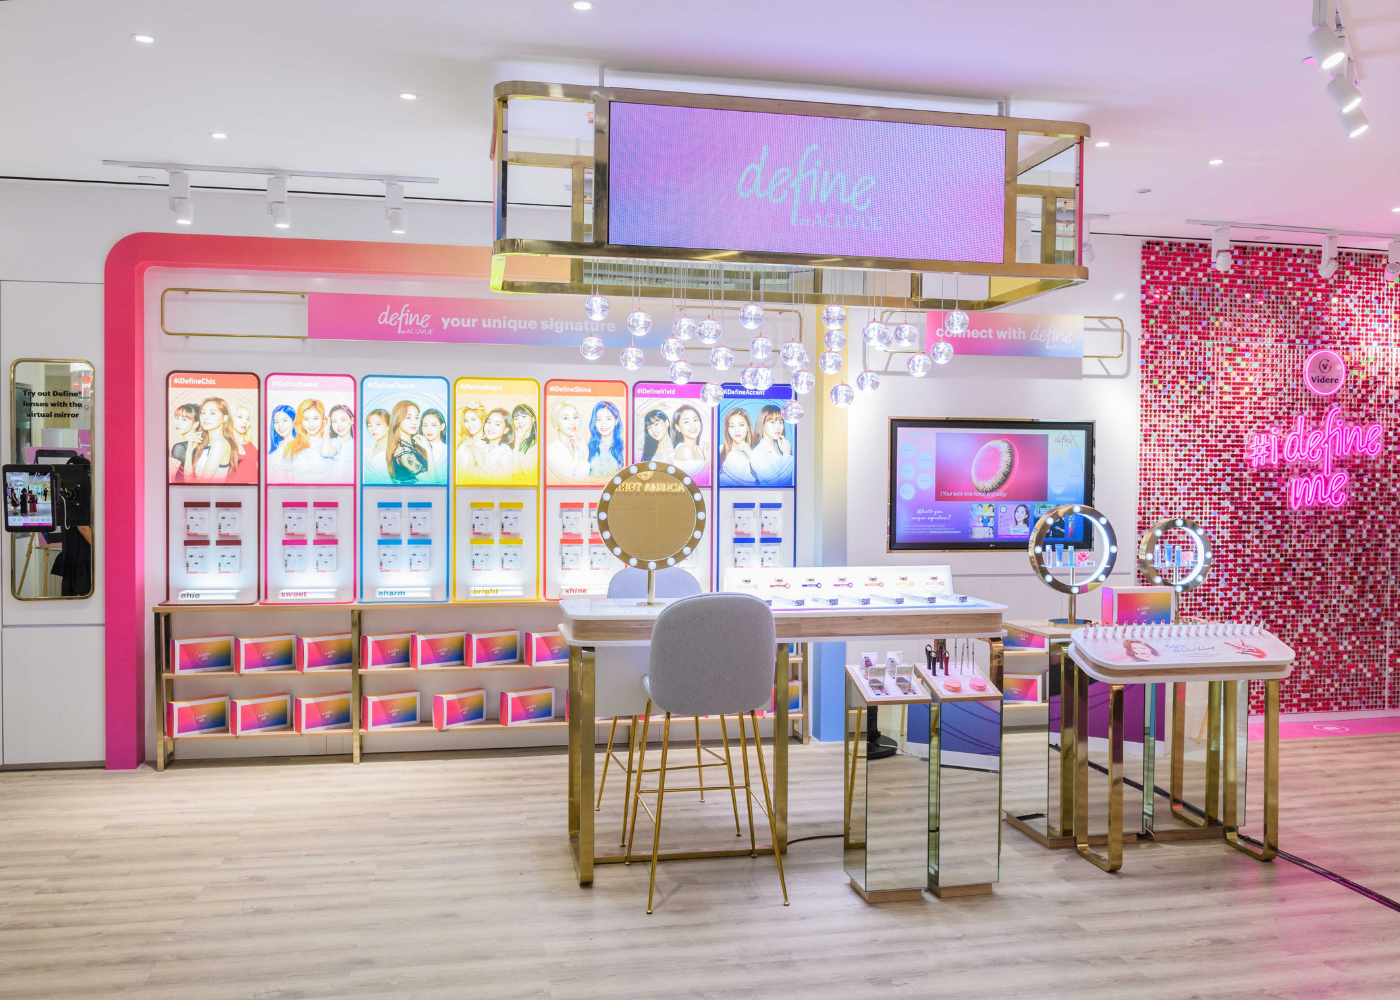 Eye know, it's cool: Videre's Centrepoint boutique is Singapore's first all-in-one eye health, beauty and cosmetic retail concept store